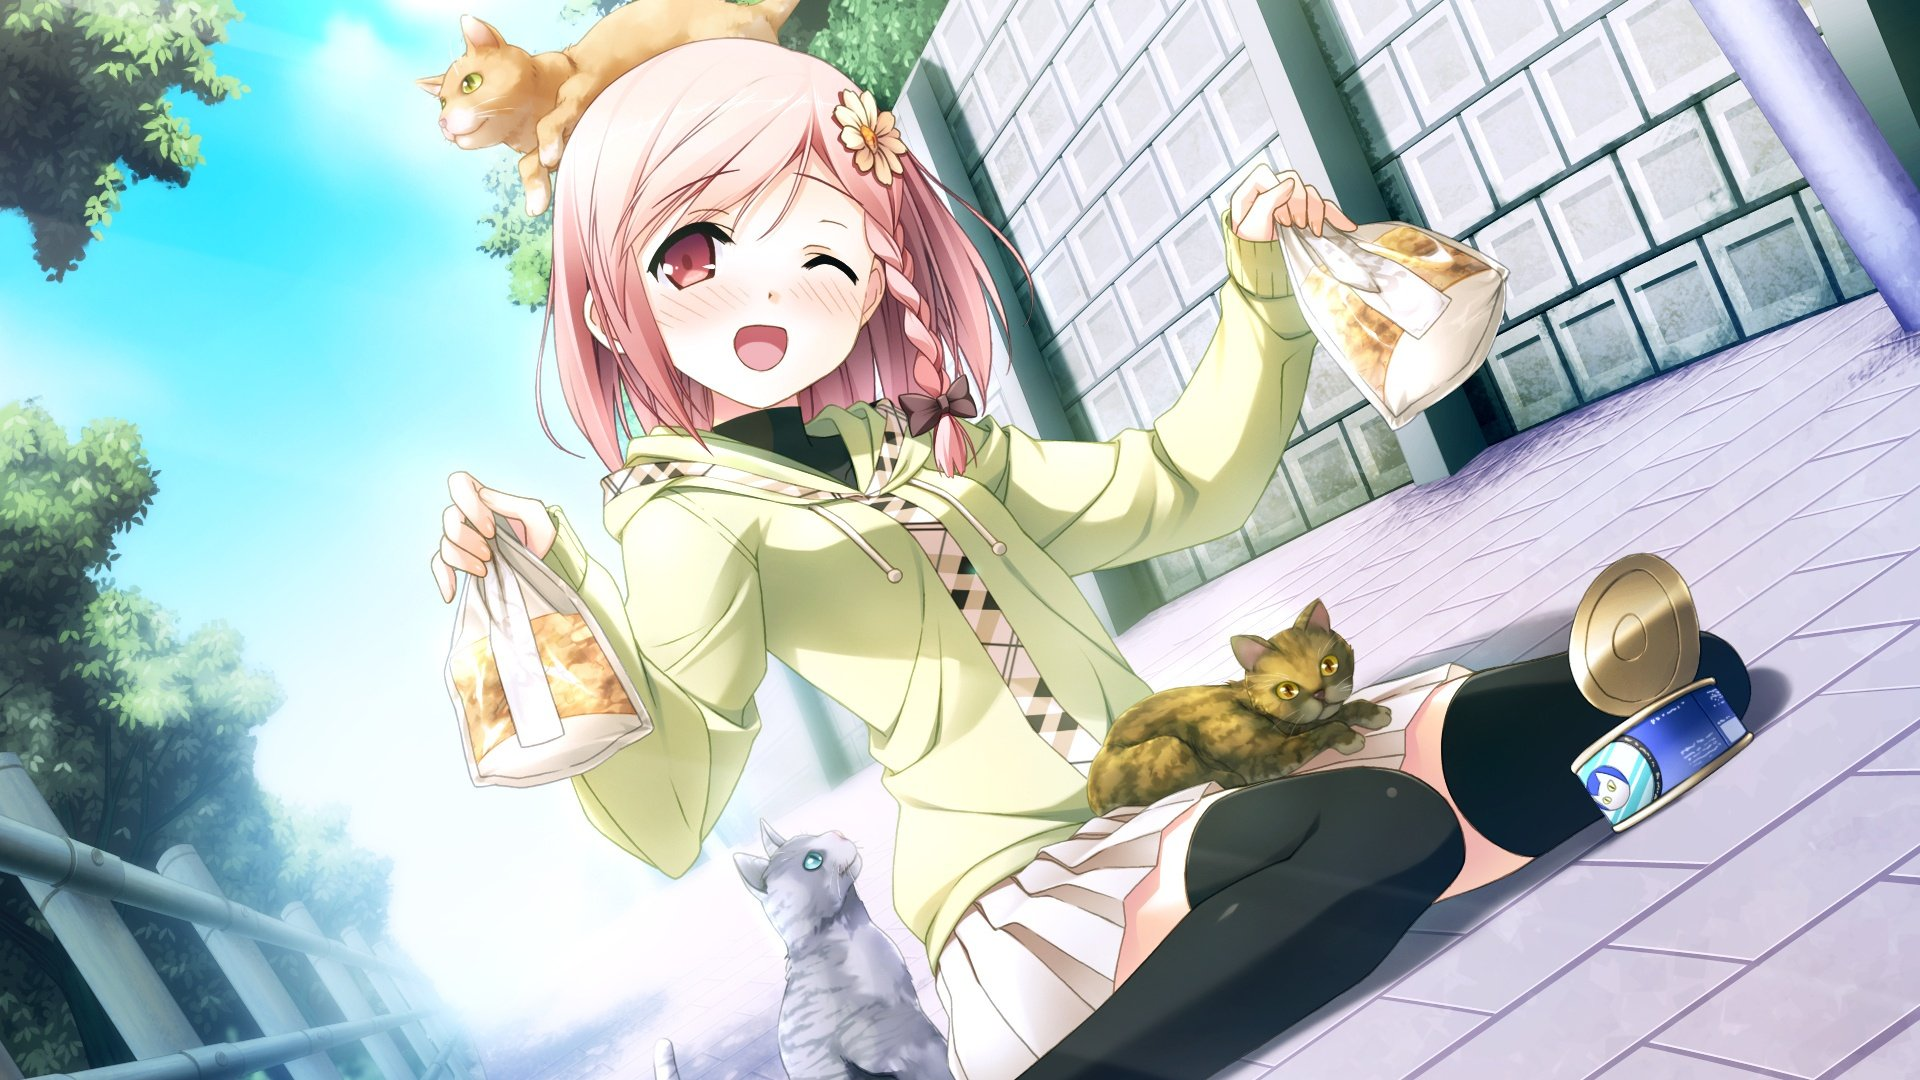 Anime Cat Girl Hd Wallpaper Full Hd Pictures